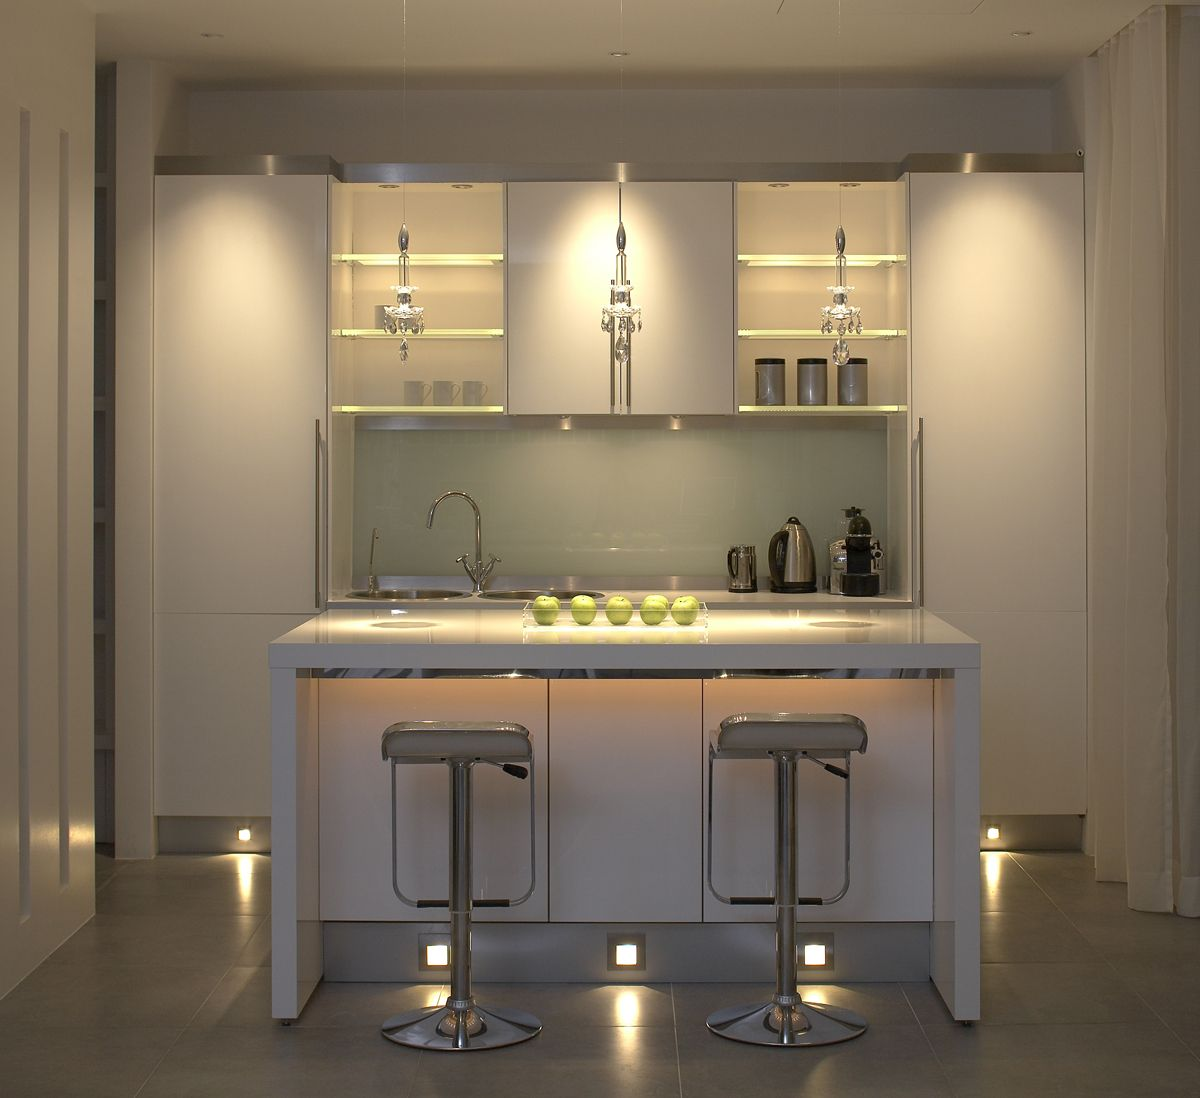 kitchen lighting design tips. 10 Kitchen Lighting Design Ideas You Must Read Before Start Planning Your To Ensure That Get It Right Including Images And Products Tips